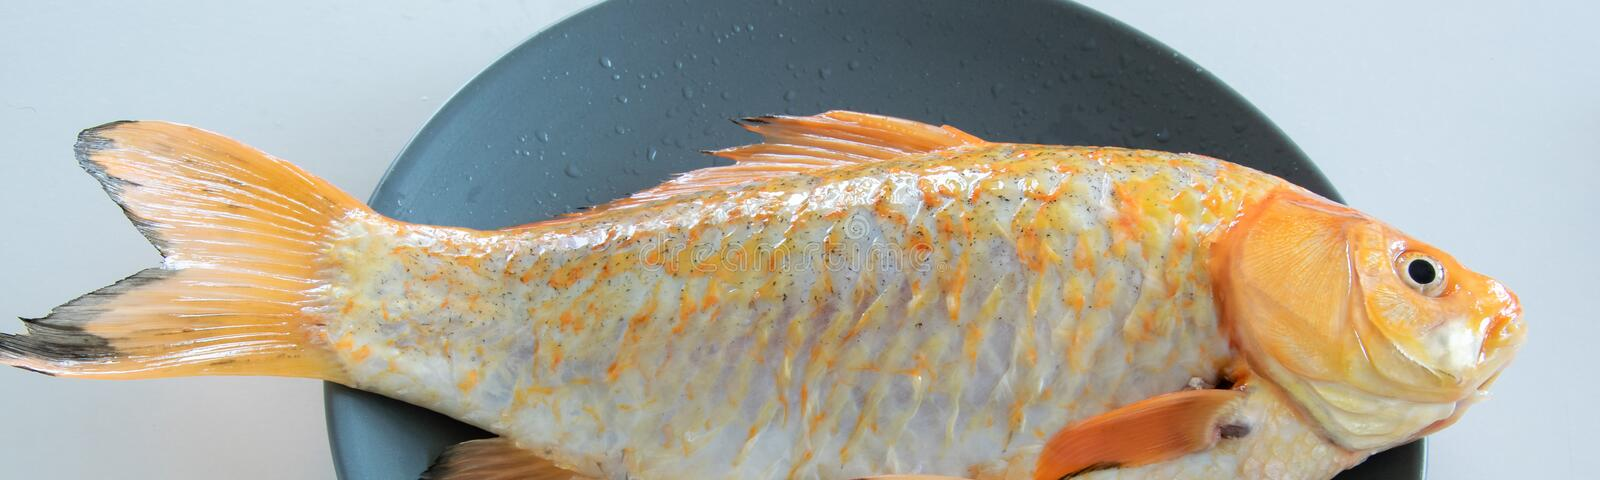 Fresh red  Carassius fish ready for cooking. Healthy eating concept, space for text royalty free stock photography